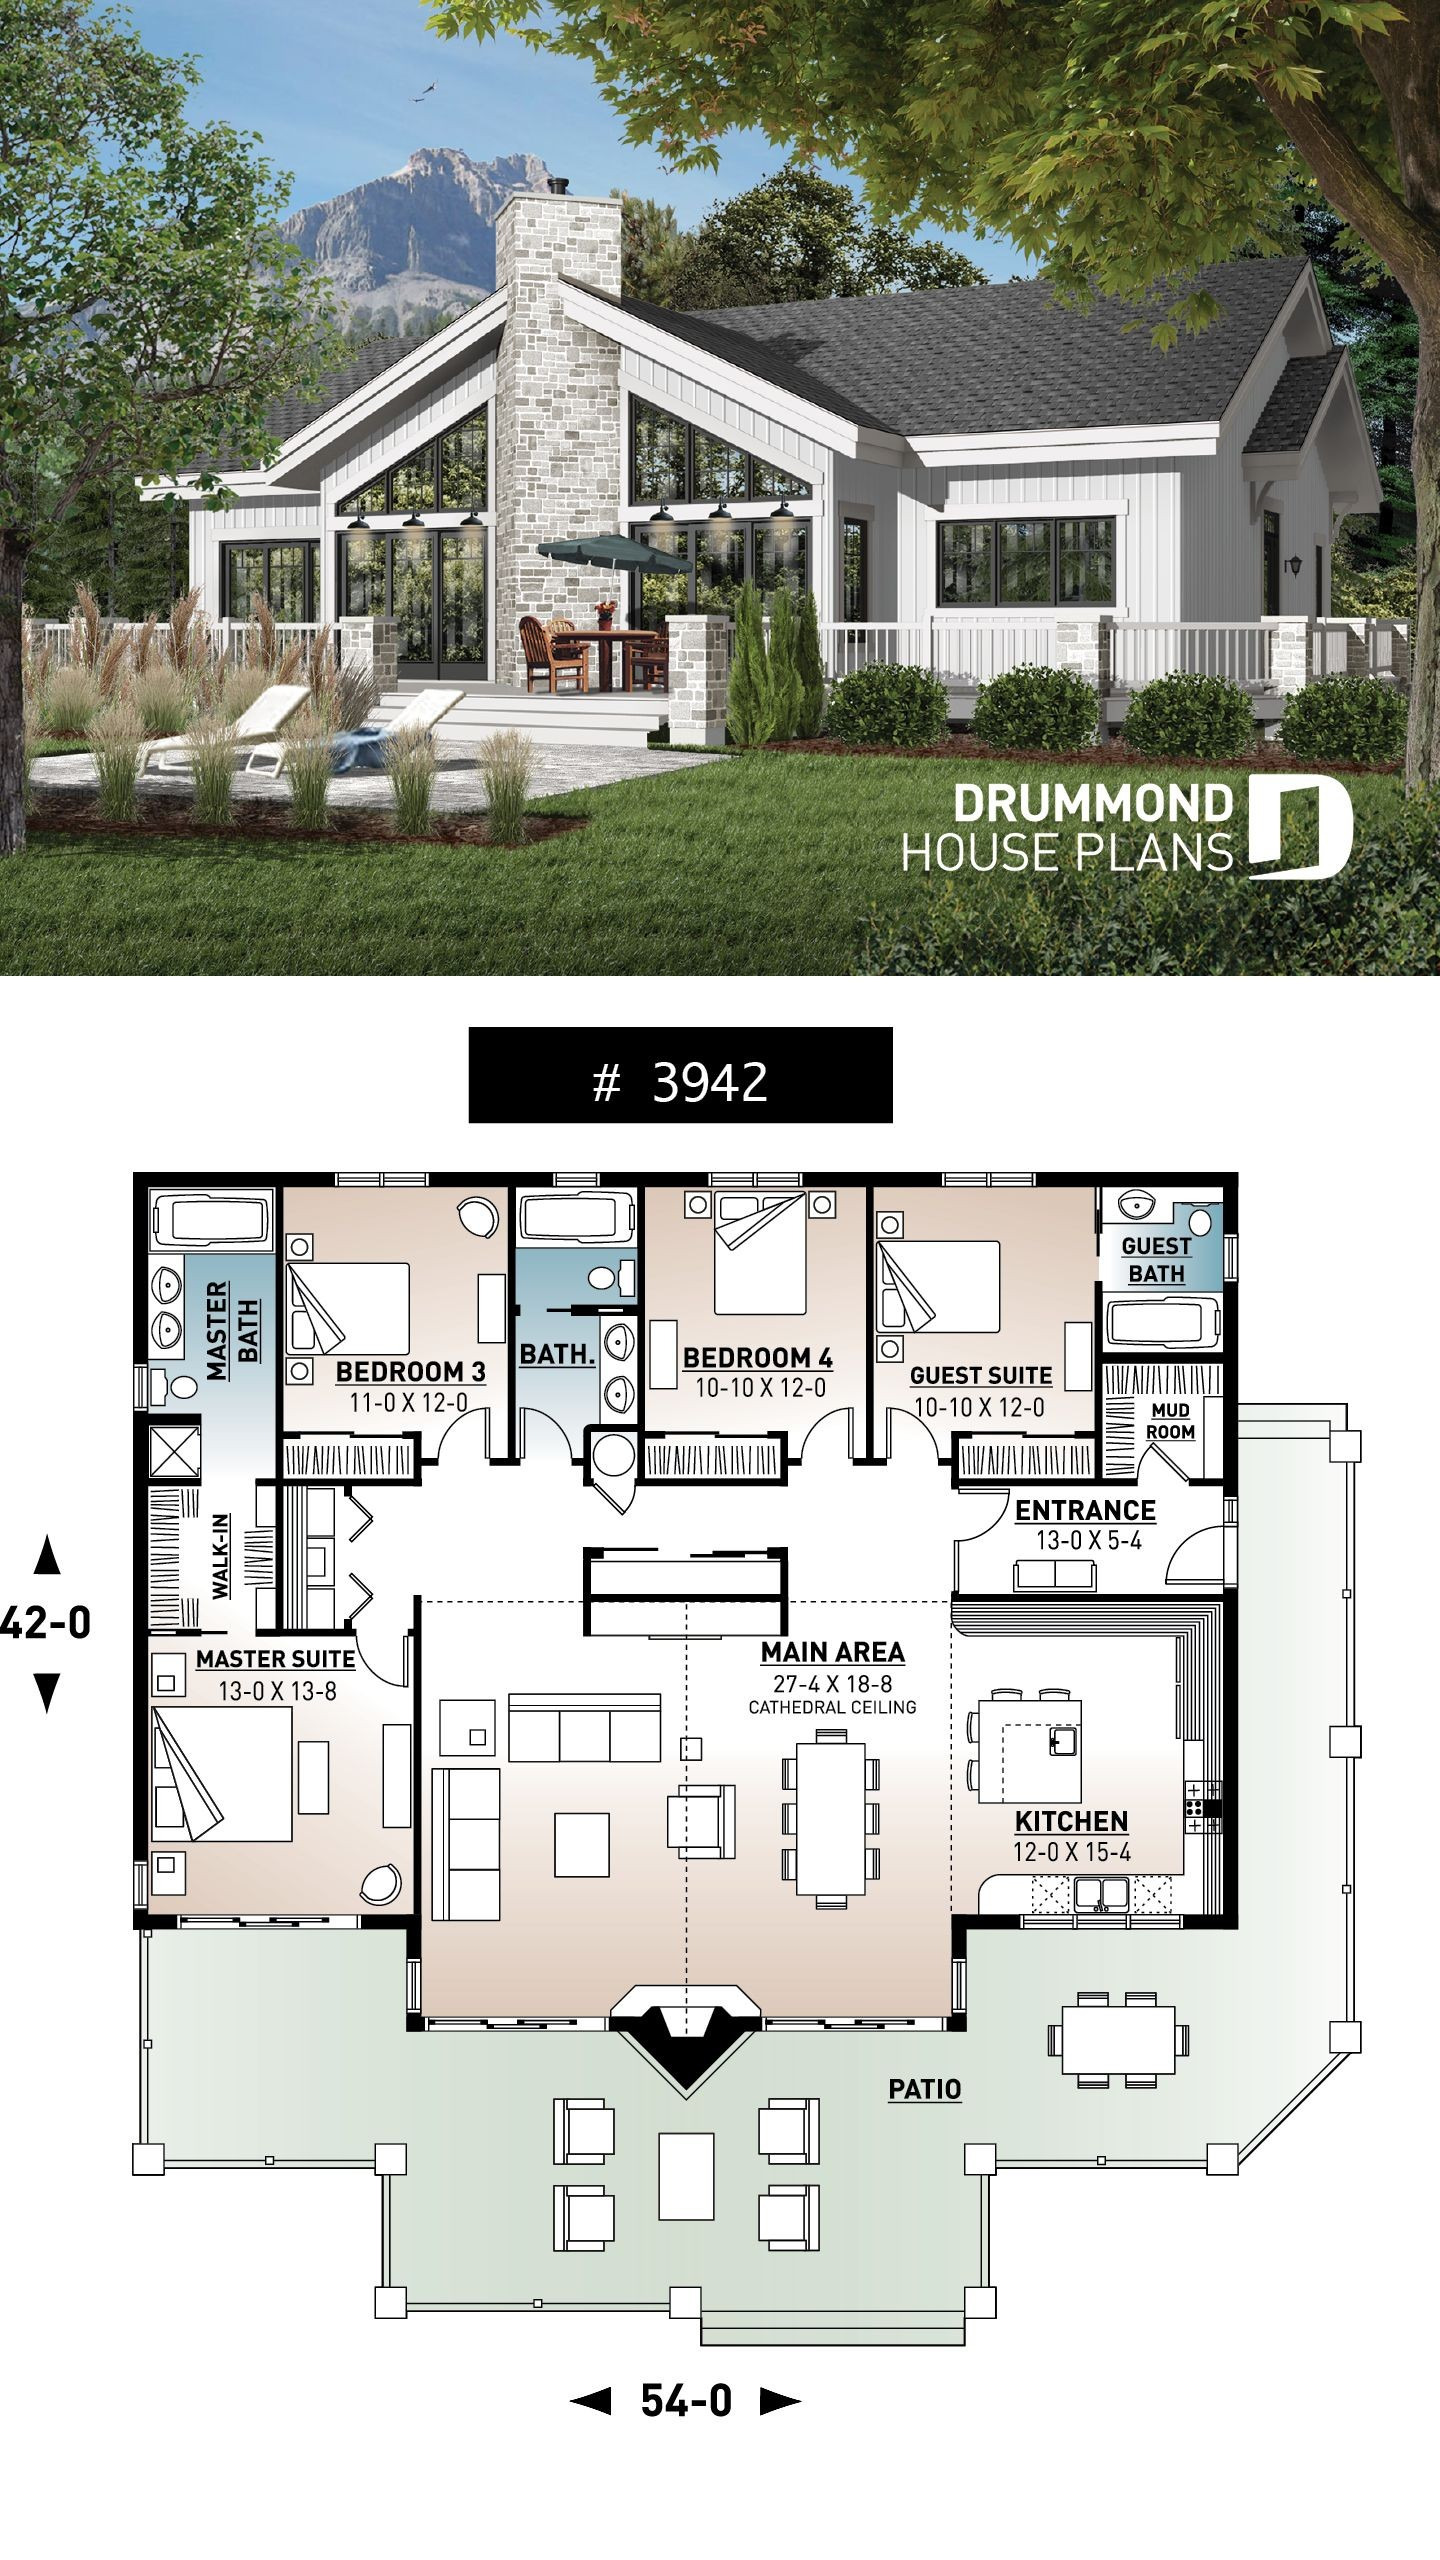 lakefront house plan cathedral ceiling 4 bedrooms 3 awesome collection for retirement home design plans job summary of retirement home design plans